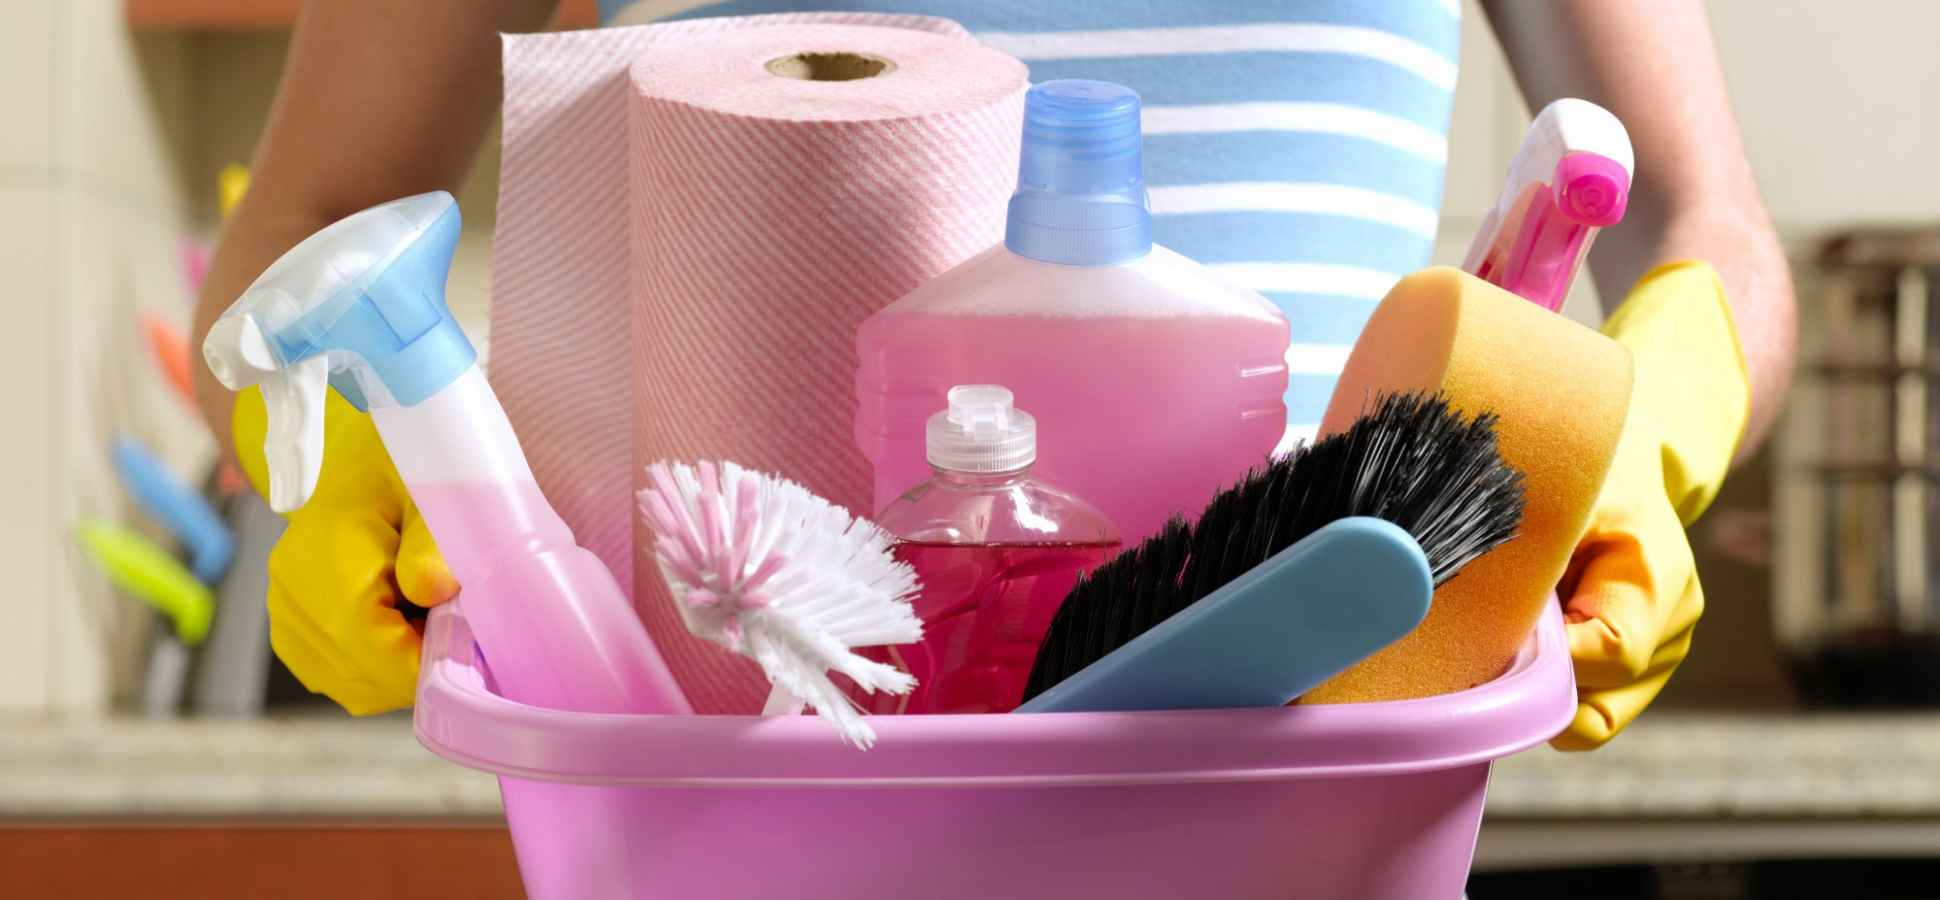 """7 Reasons I Disagree With Marie Kondo's """"The Life-Changing Magic of Tidying Up"""""""